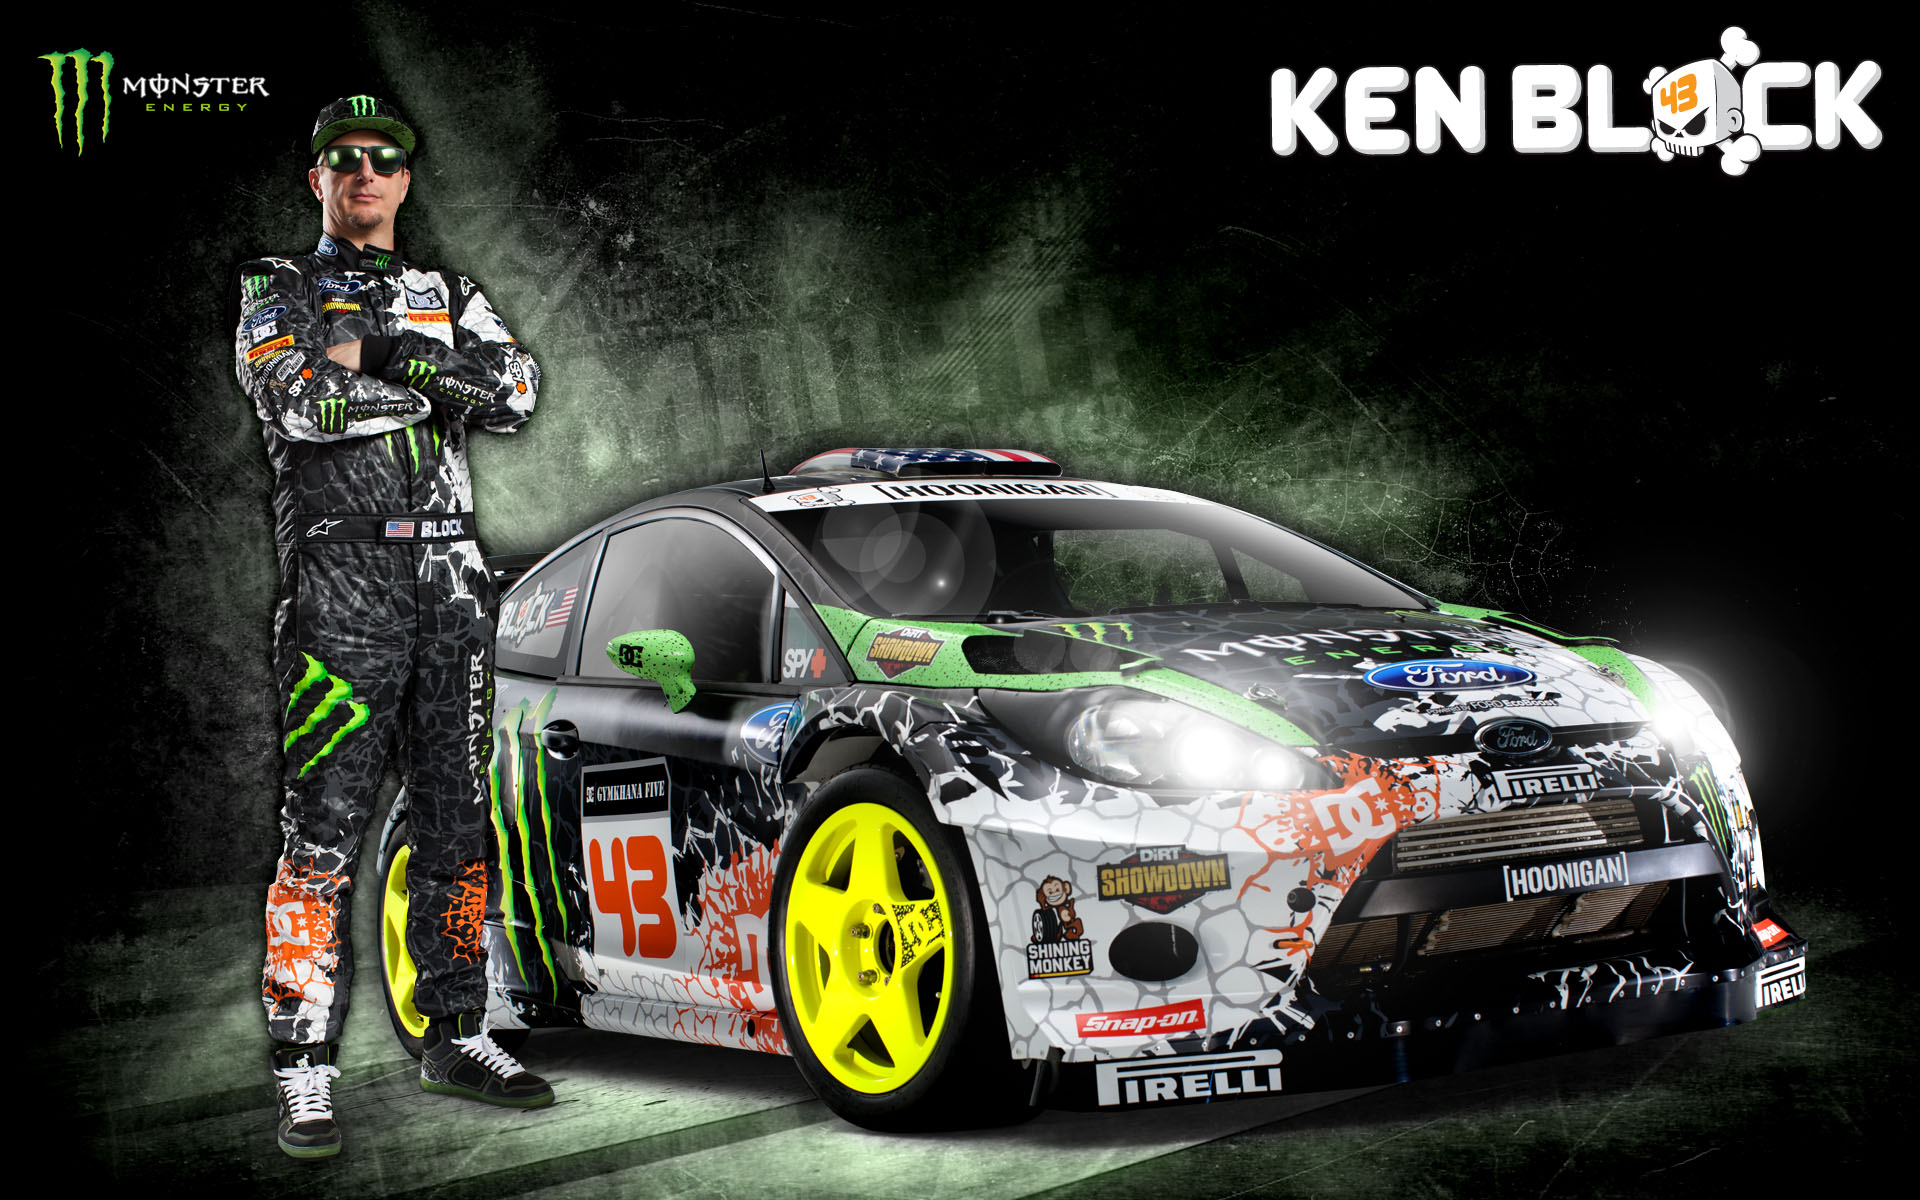 Ken Block Wallpaper 1920x1200 17143